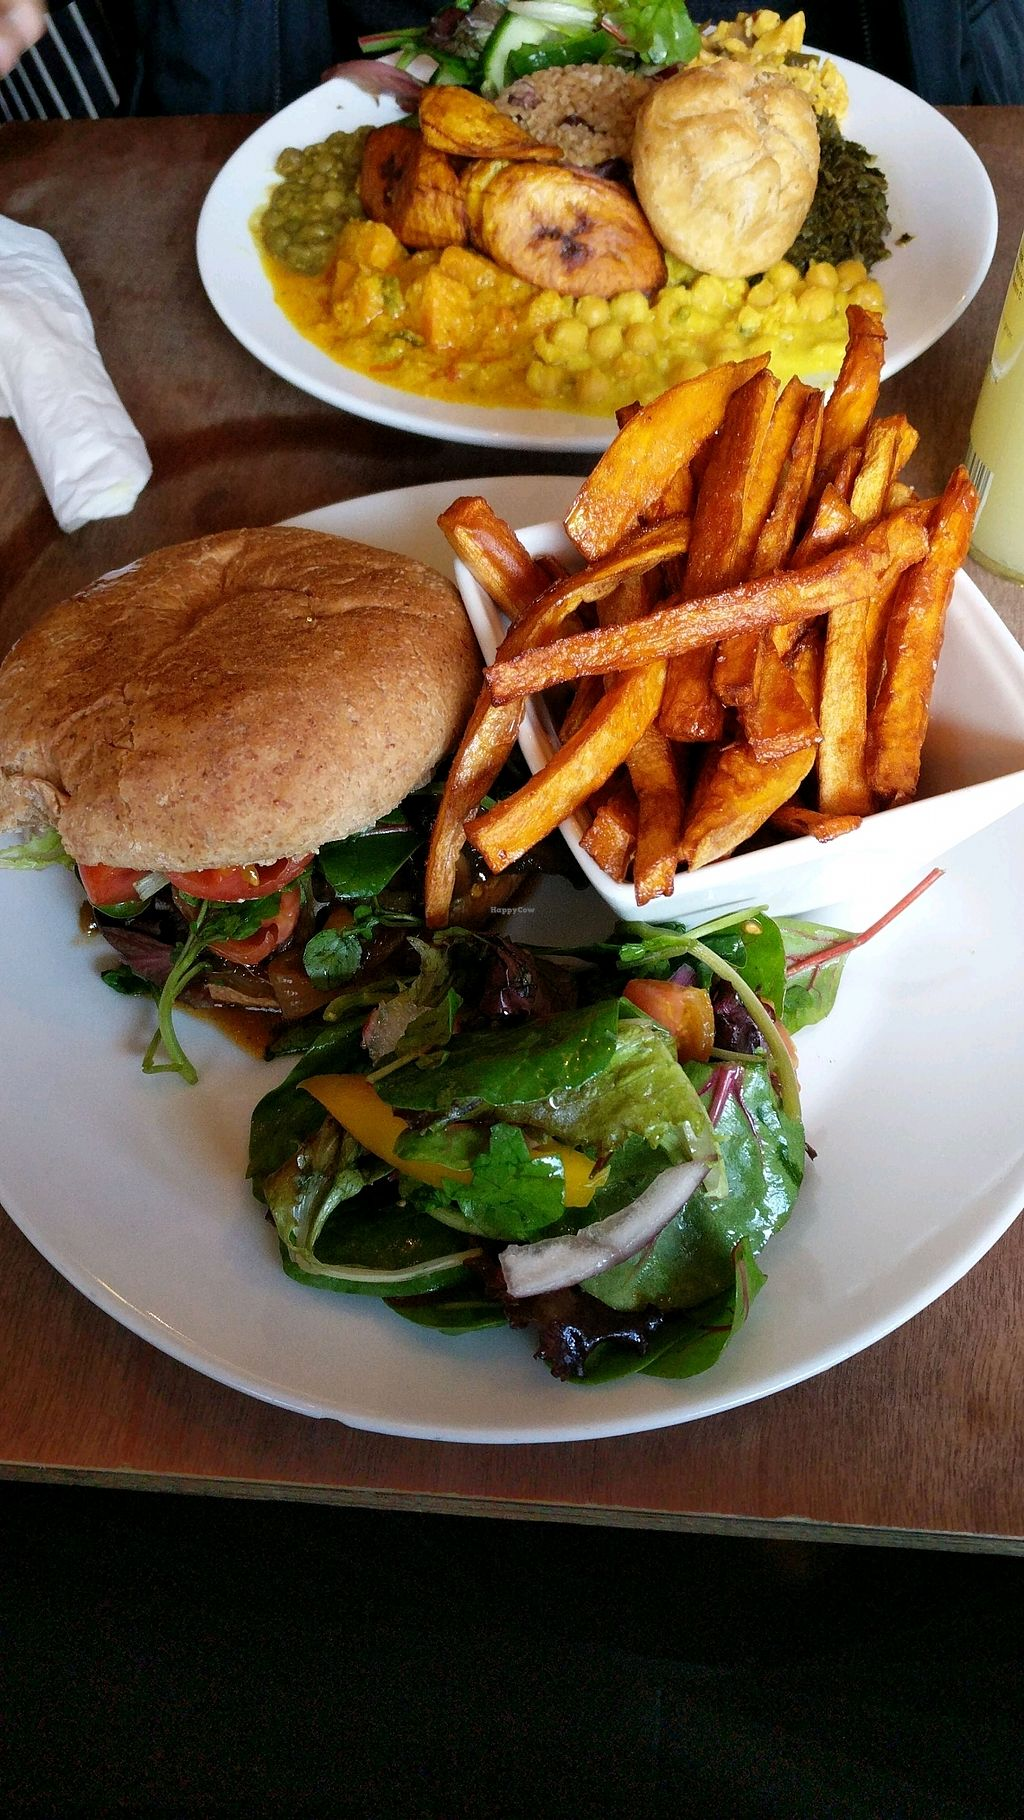 "Photo of Eat of Eden  by <a href=""/members/profile/AdamFitzpatrick"">AdamFitzpatrick</a> <br/>Mushroom burger <br/> March 14, 2018  - <a href='/contact/abuse/image/95115/370515'>Report</a>"